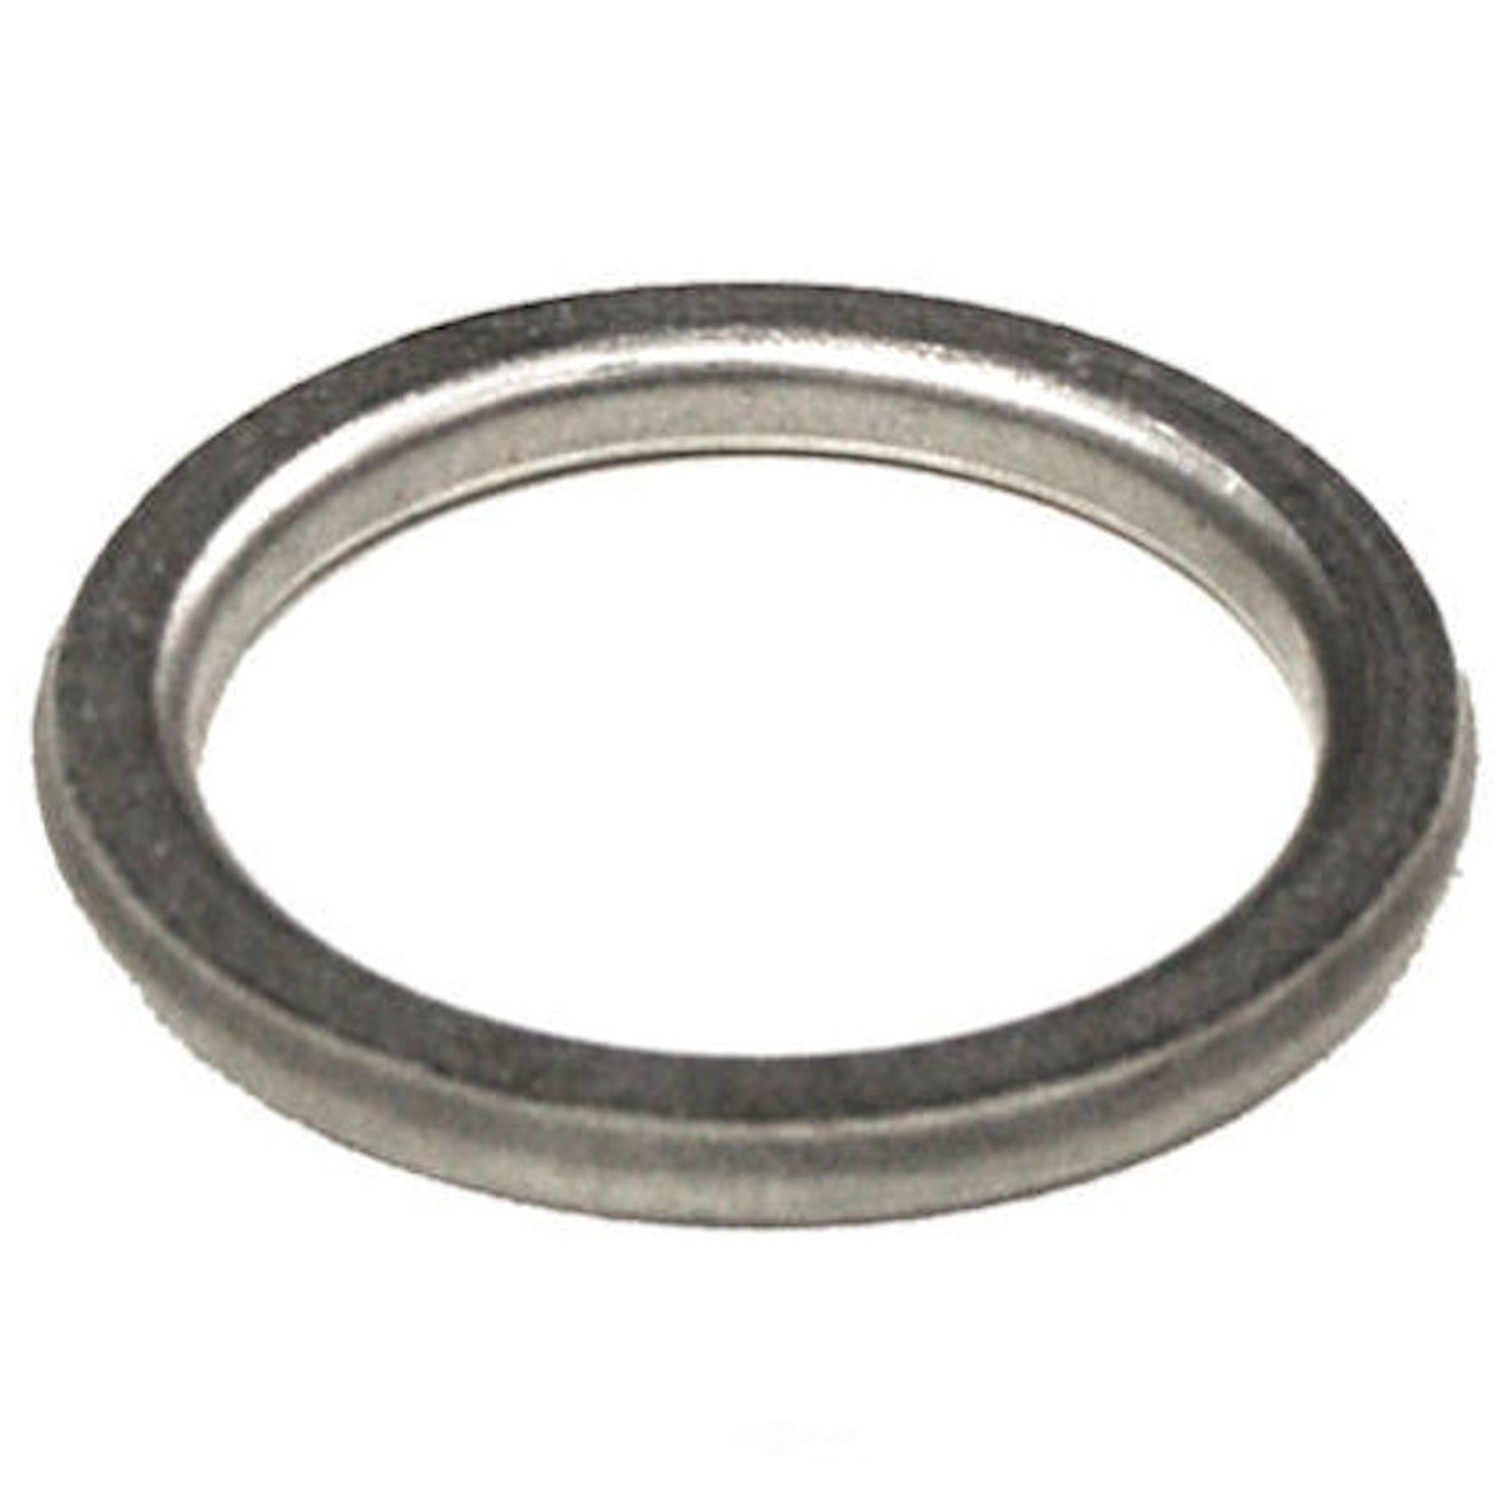 BOSAL 49 STATE CONVERTERS - Exhaust Pipe Flange Gasket (Outlet) - BSF 256-071